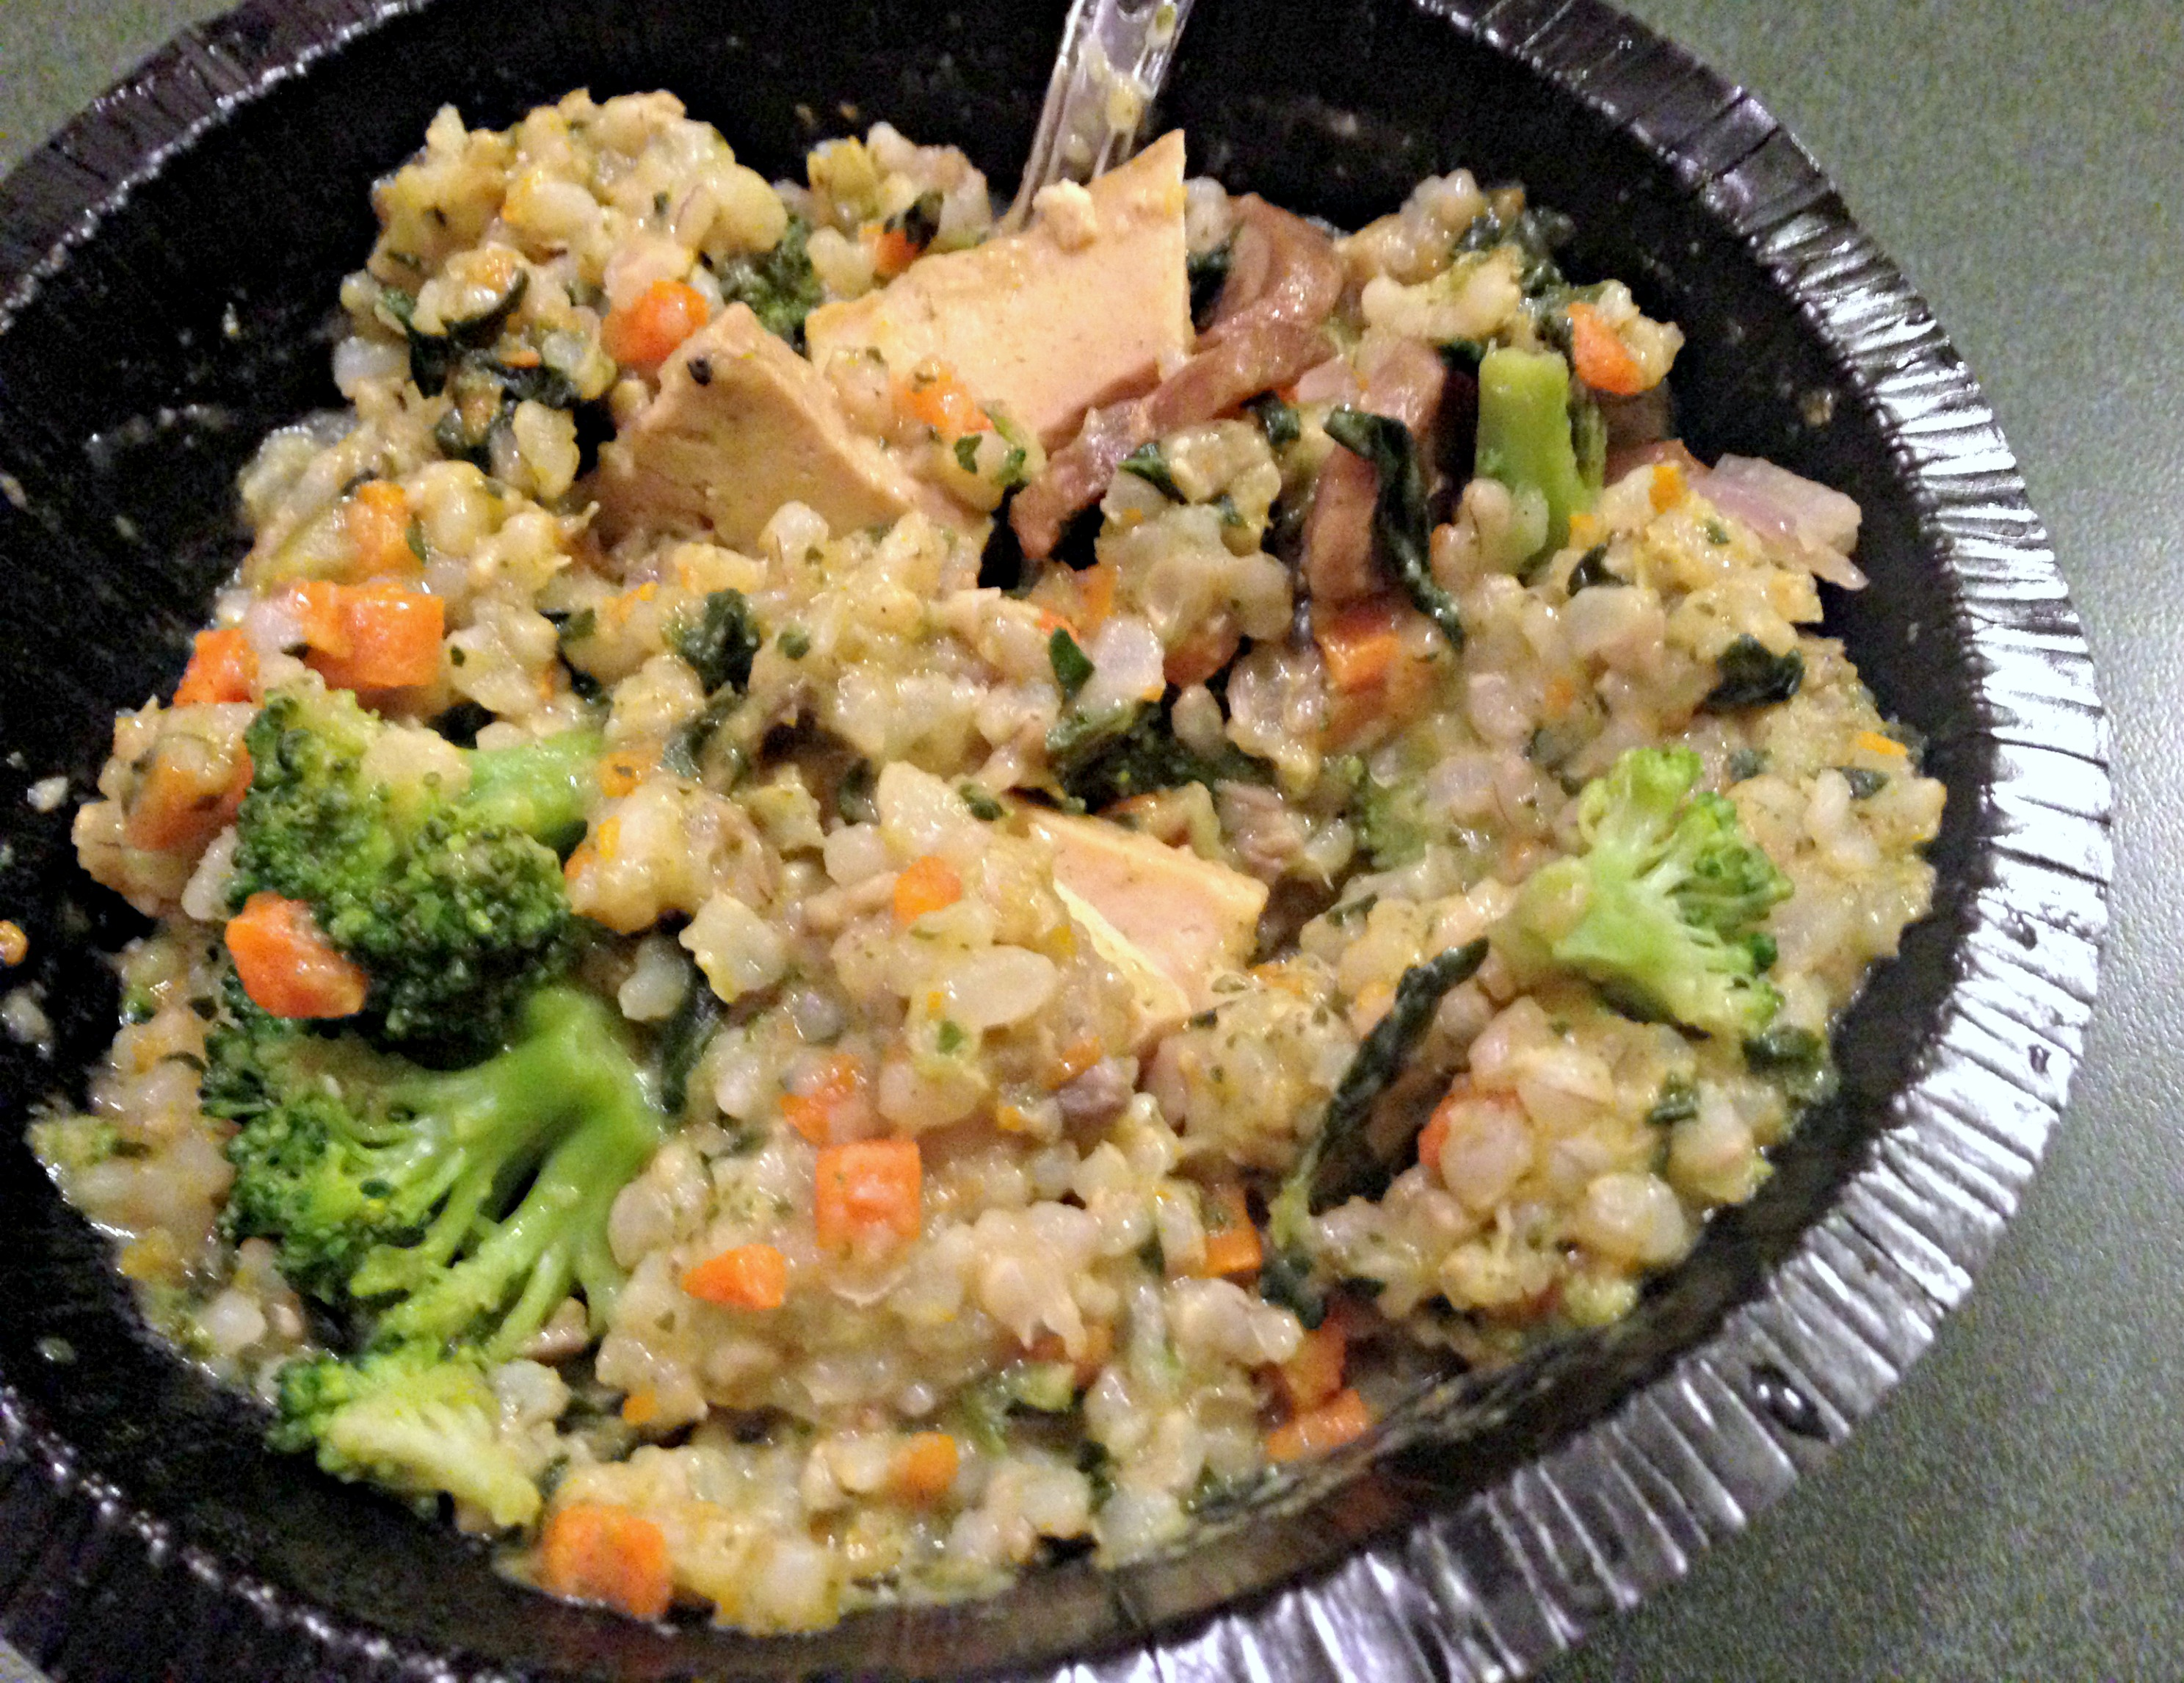 amy's brown rice and vegetables bowl